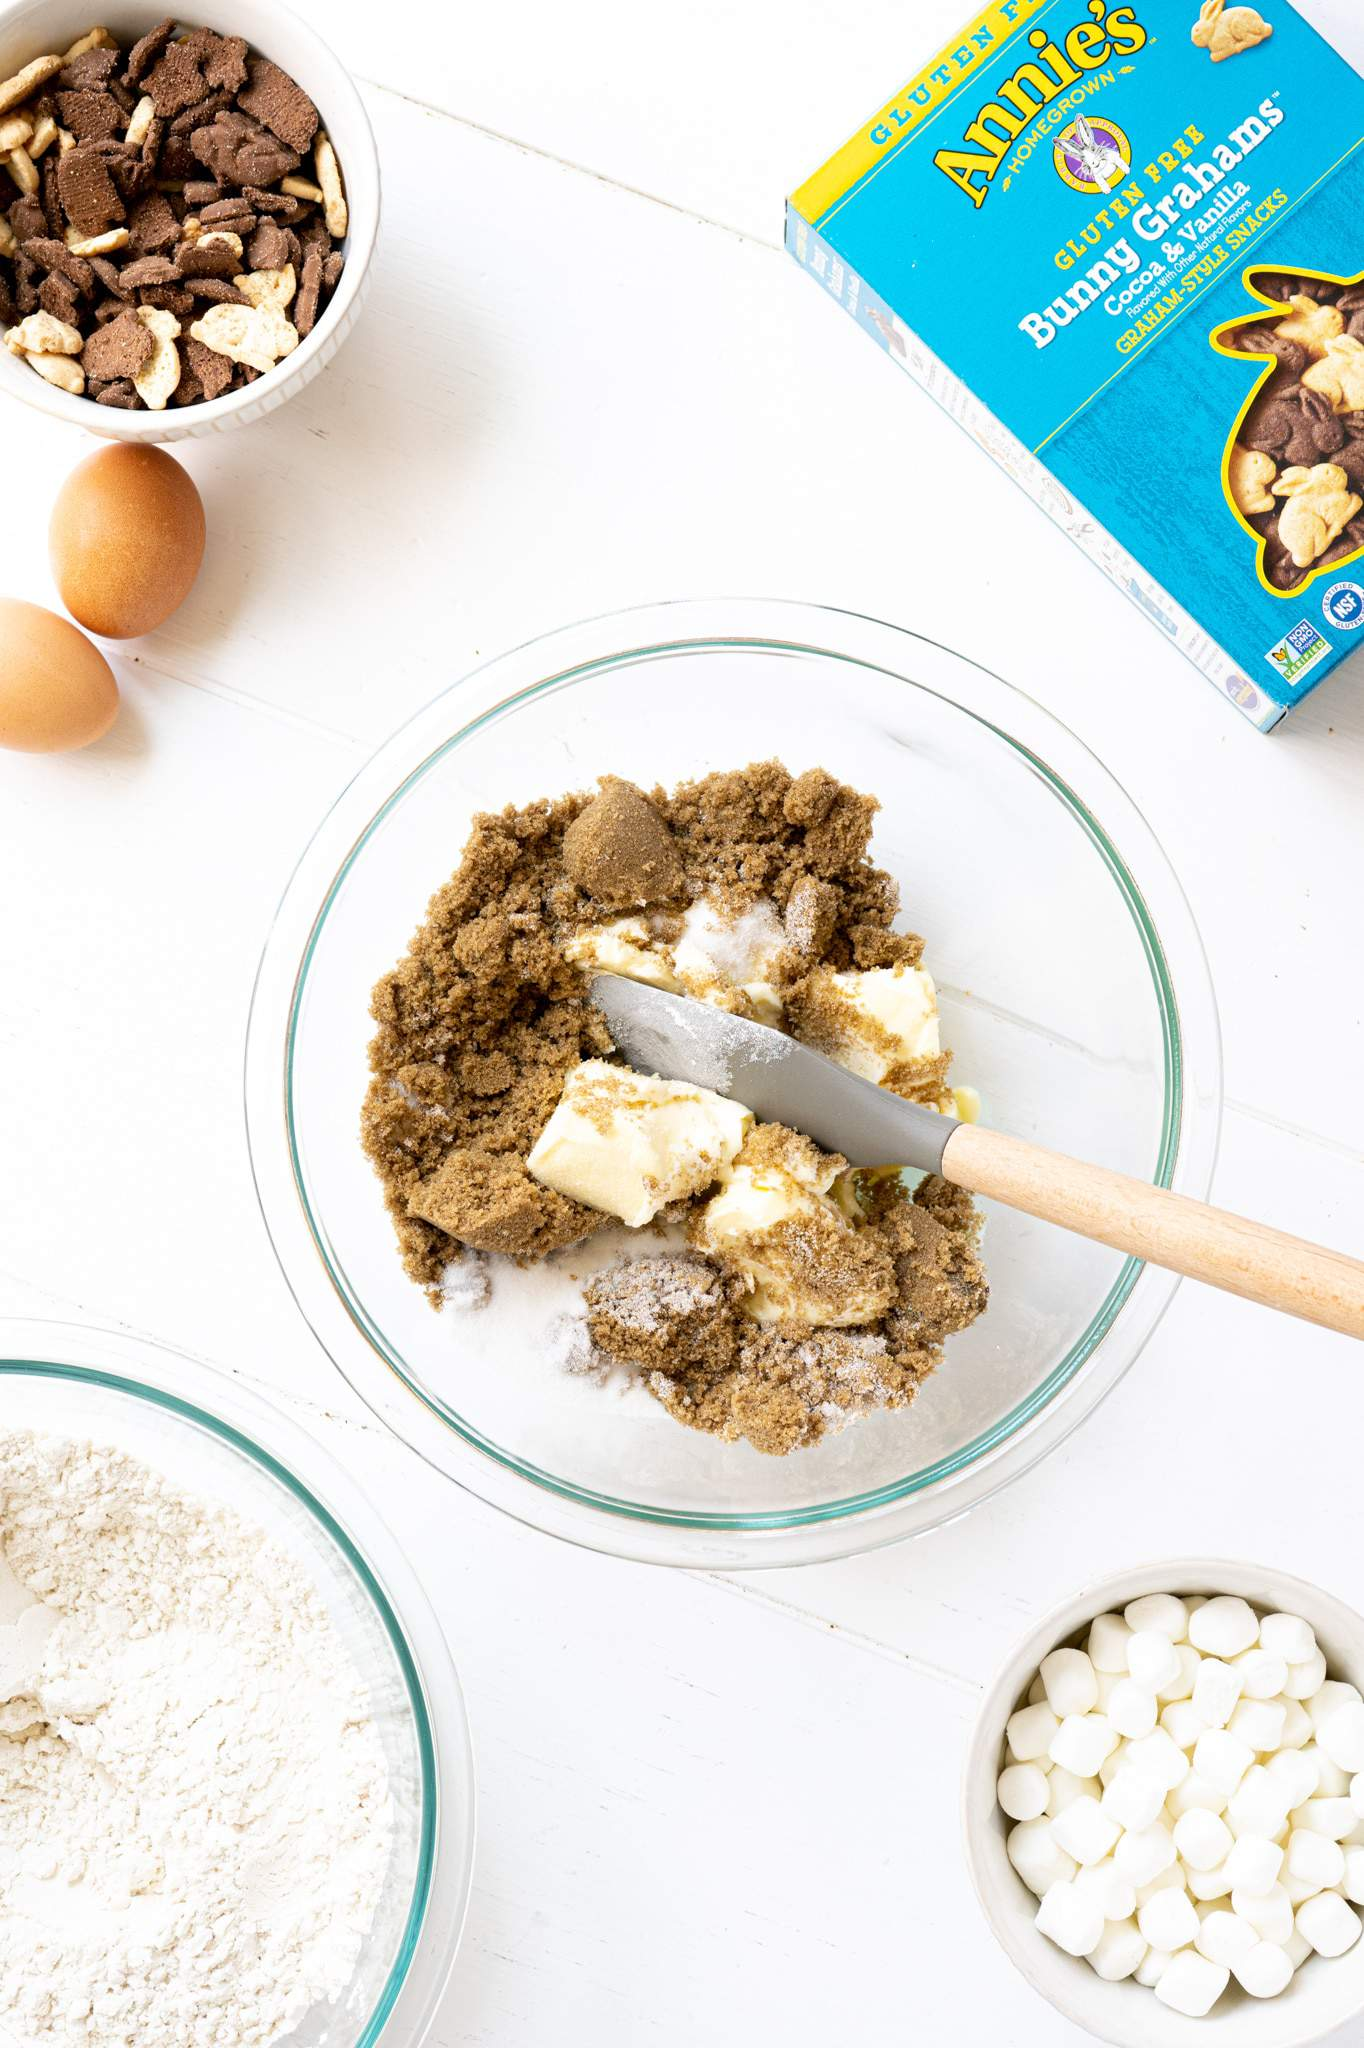 Butter and sugar in a mixing bowl with a spatula.